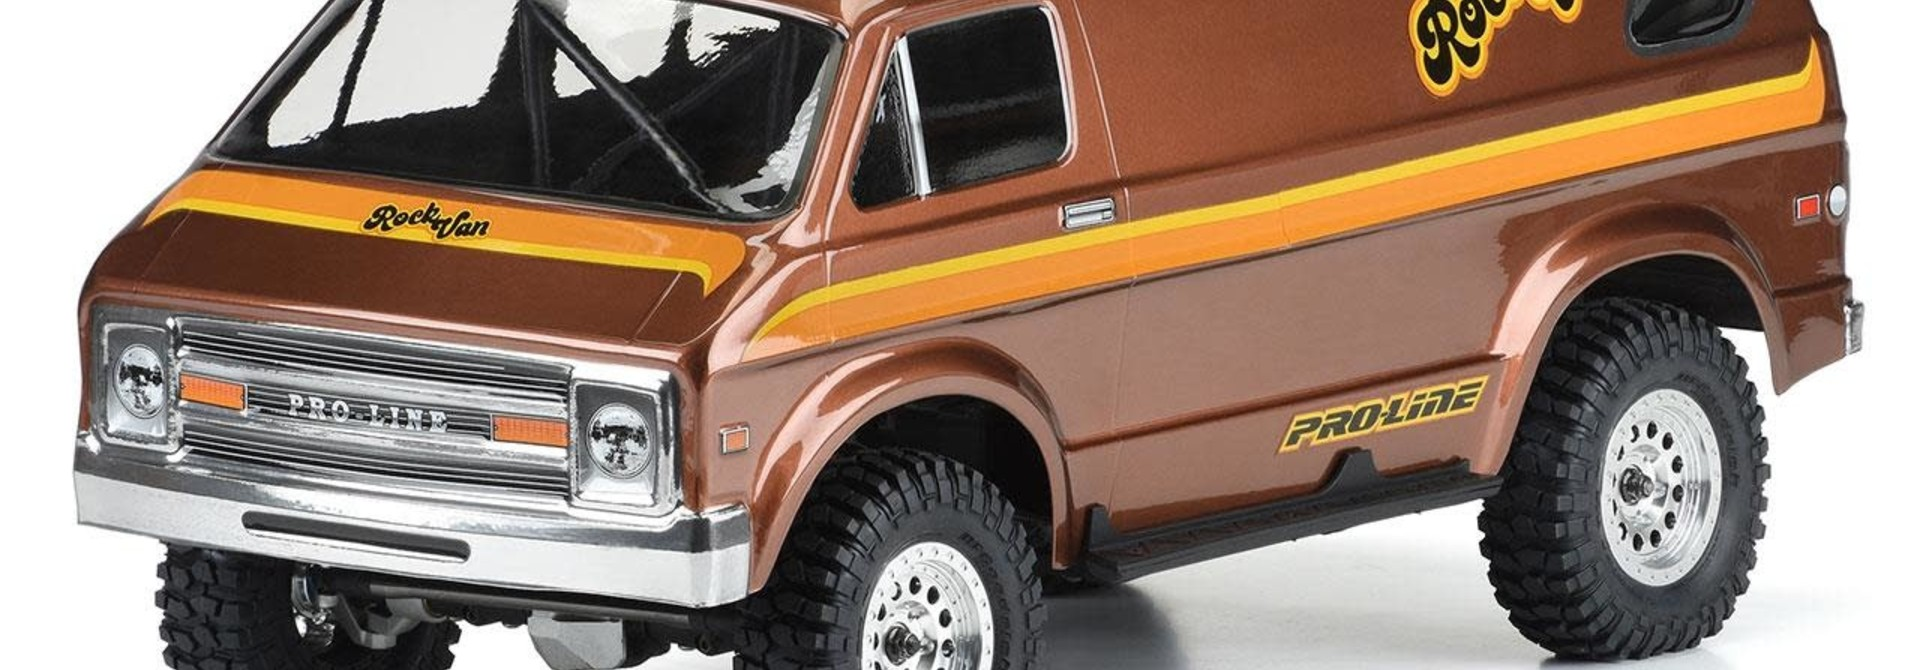 """'70s Rock Van Clear Body for 12.3"""" (313mm) Wheelbase Scale Crawlers"""